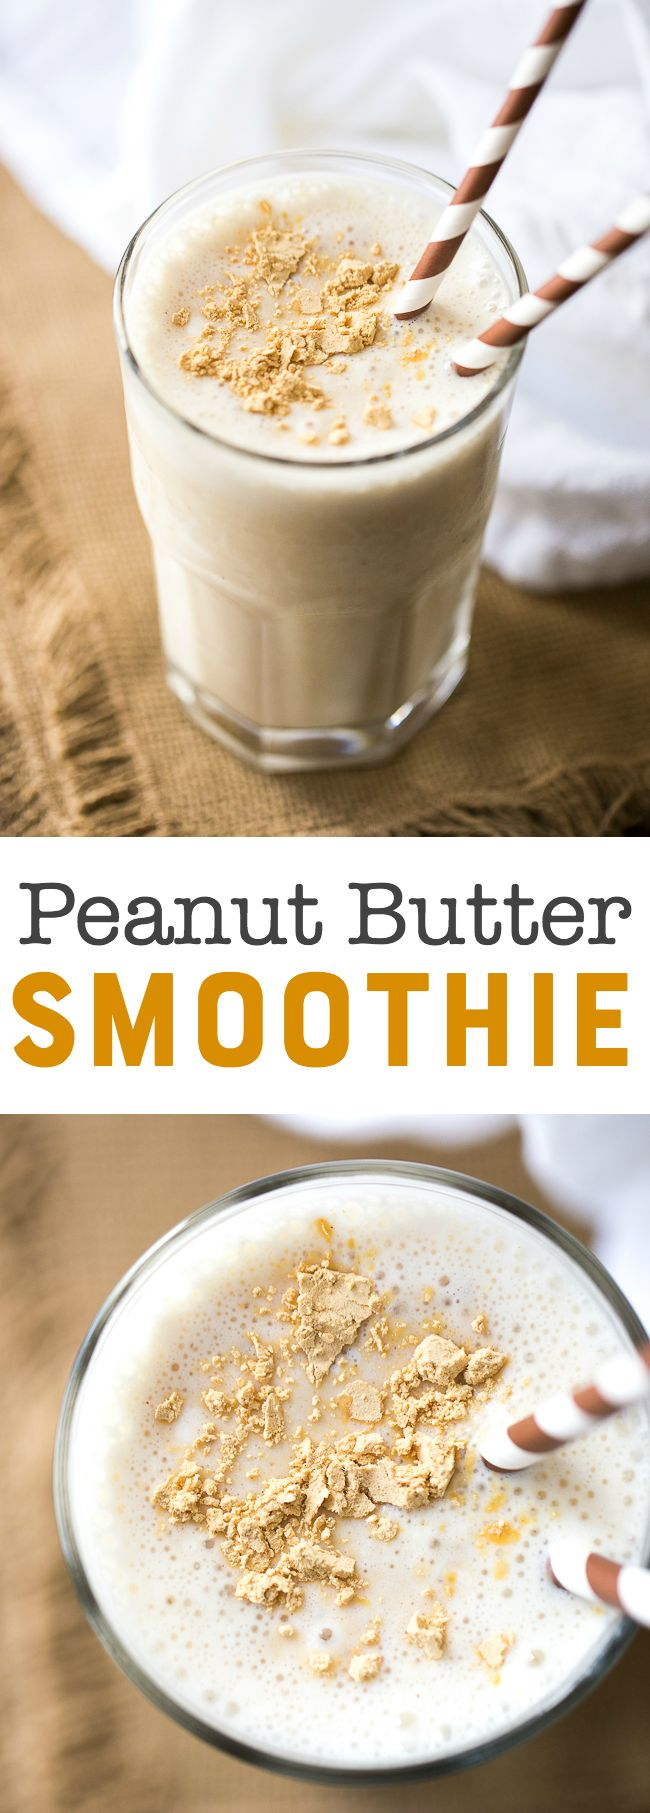 Peanut Butter smoothie recipe. | #InspirationSpotlight